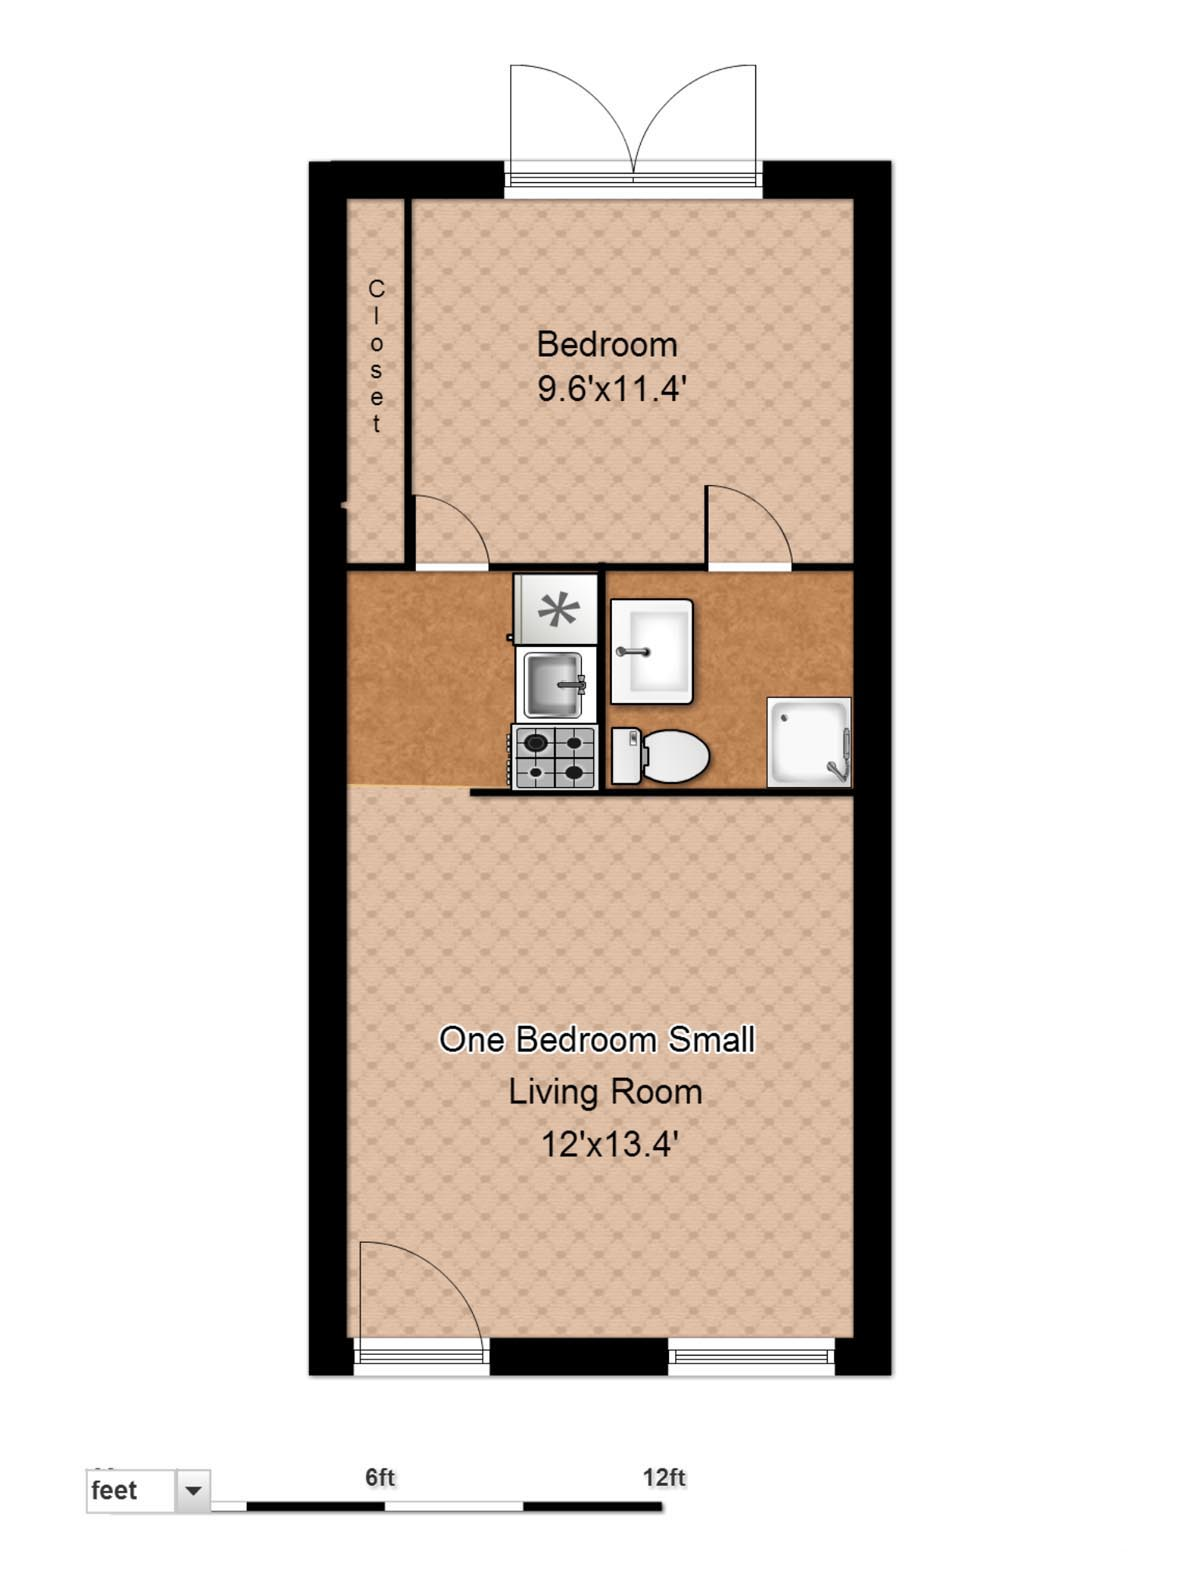 Floor plans evergreen terrace apartmentsevergreen terrace apartments - Planning the studio apartment floor plans ...